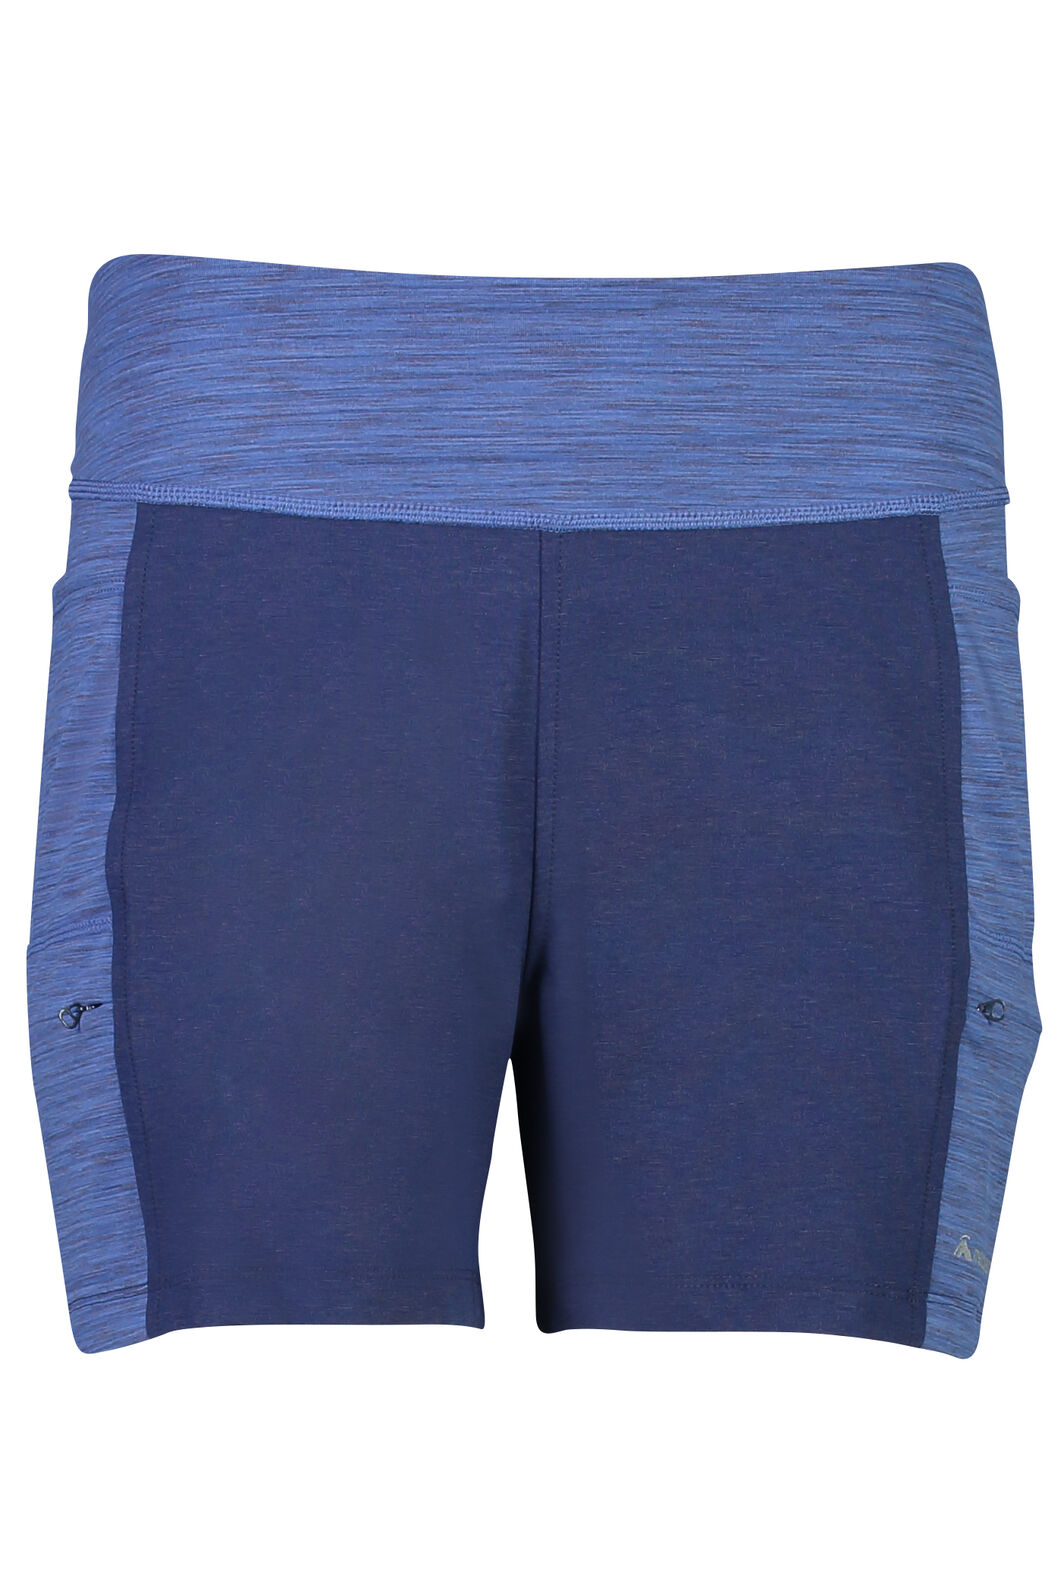 There and Back Short - Women's, Medieval Blue, hi-res